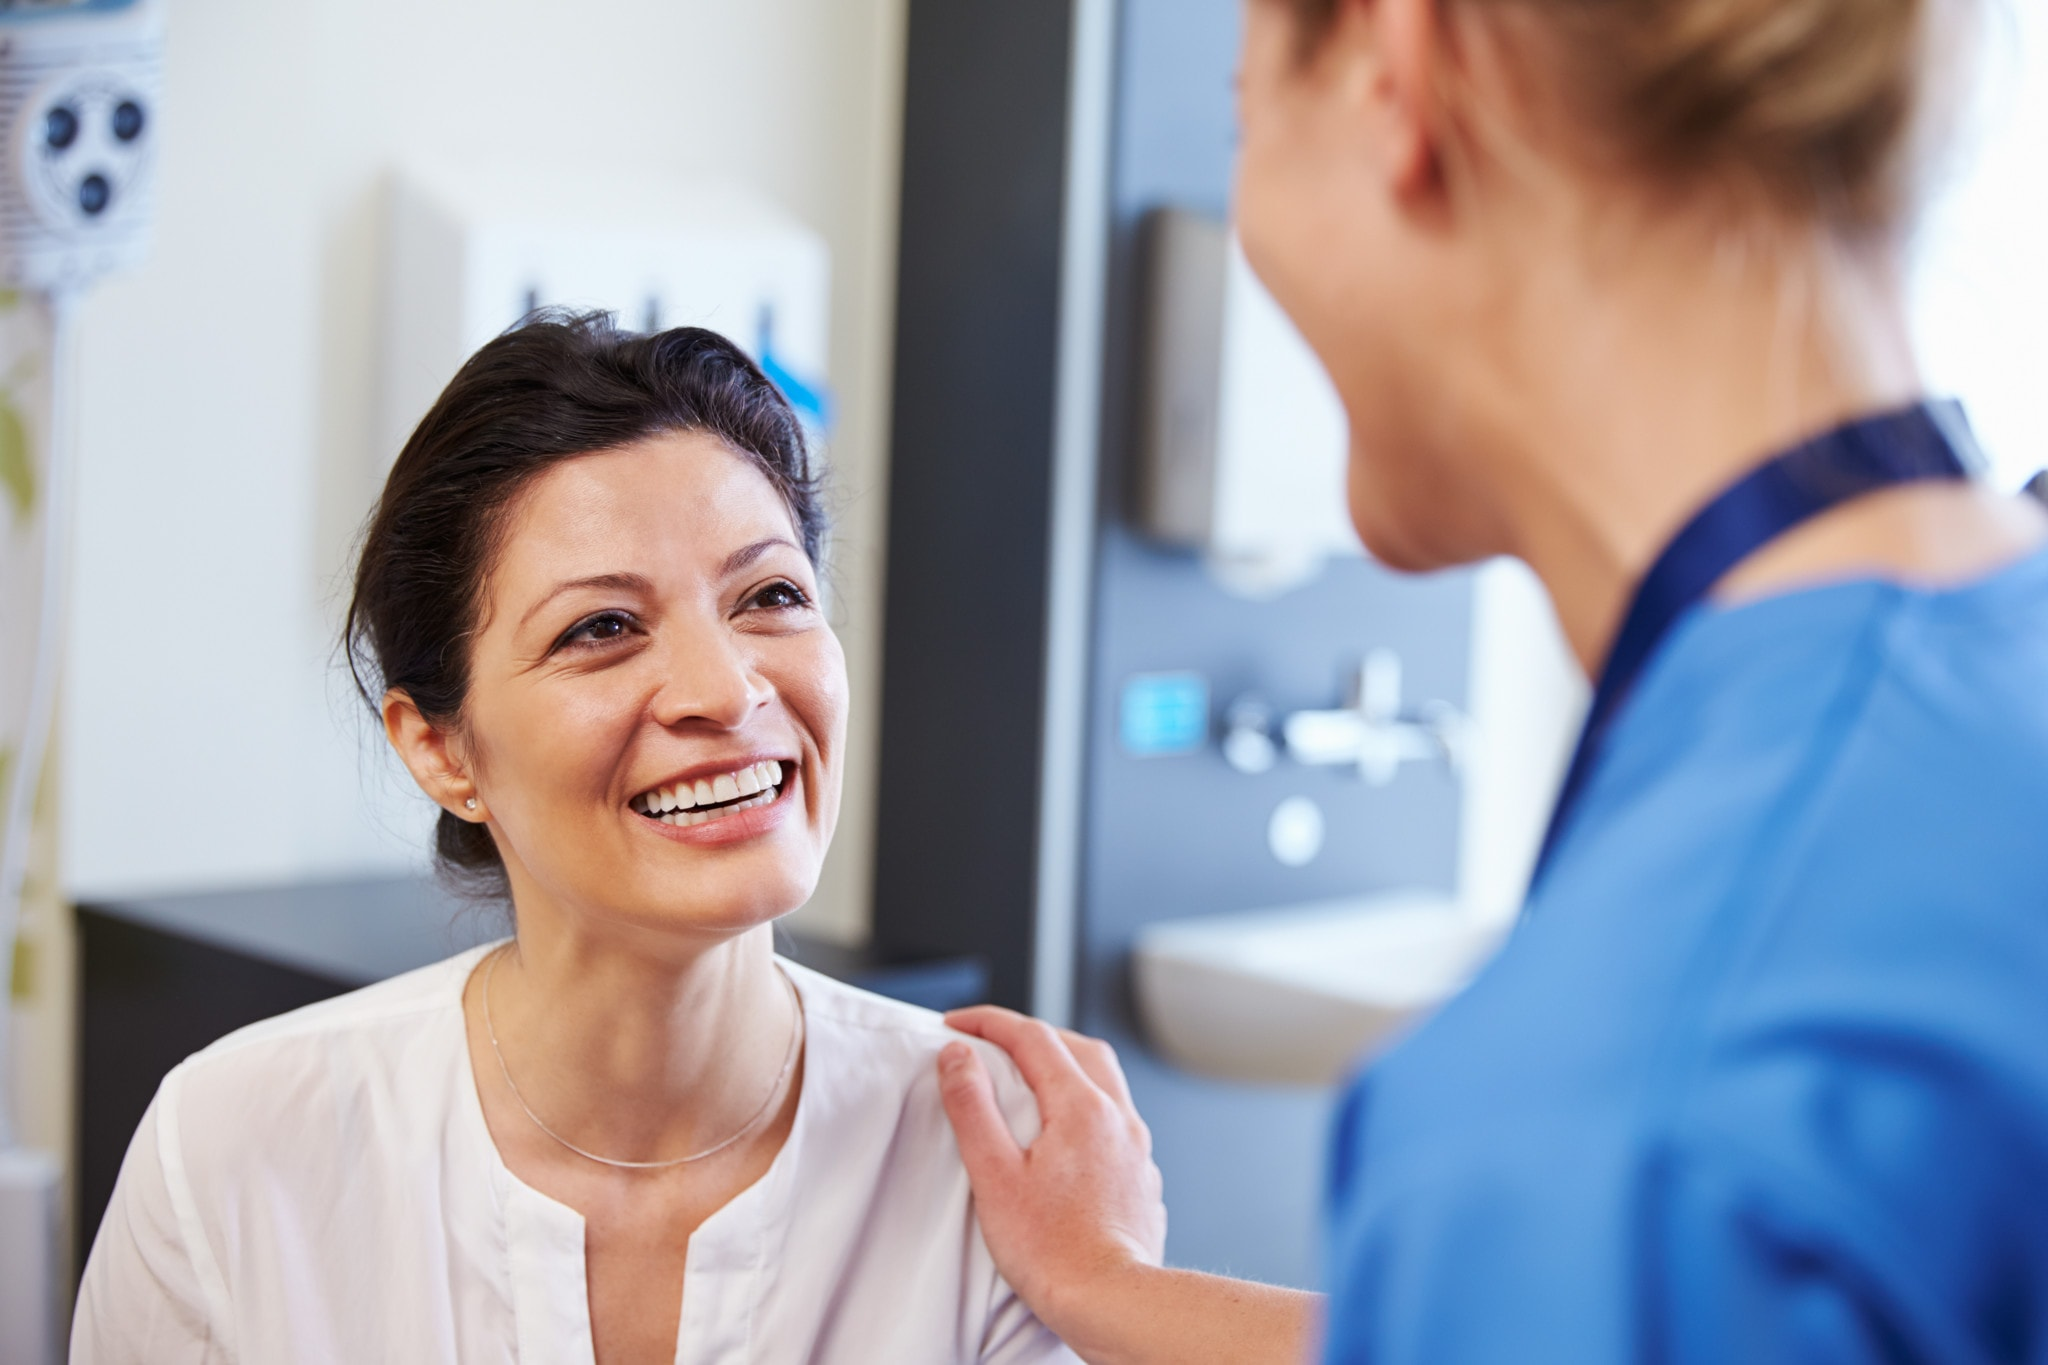 North Texas Gynecologic Oncology - Female Patient Being Reassured By Doctor In Hospital Room